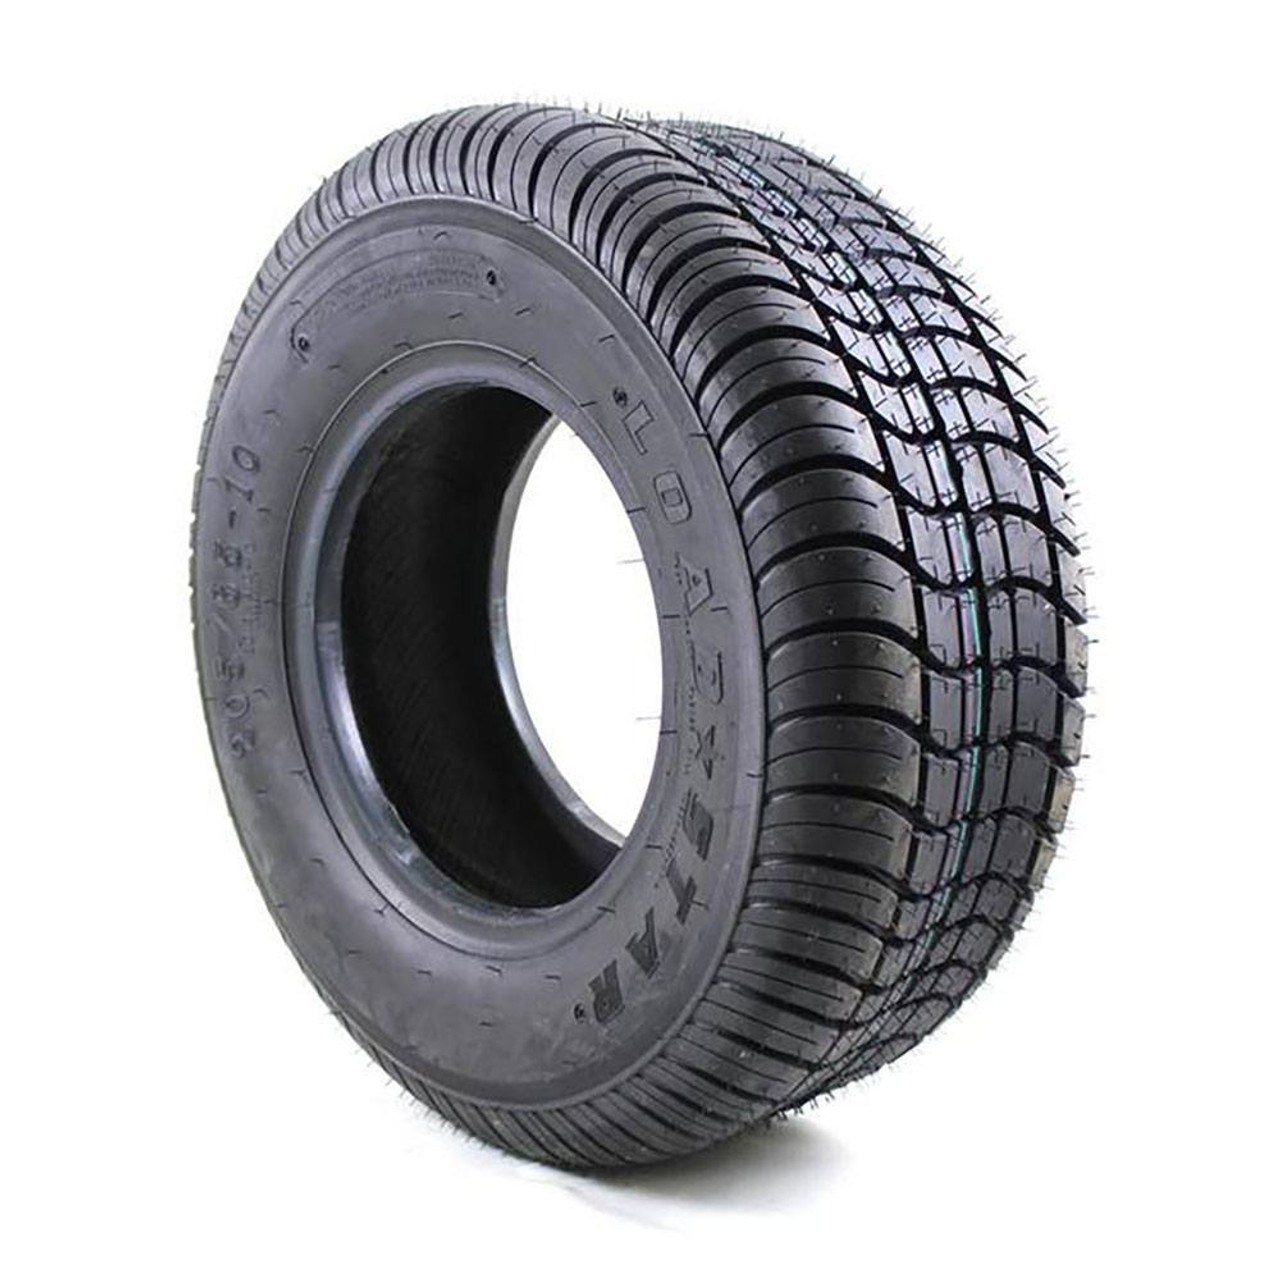 20.5X8.00-10 (205/65-10) Load Range C Bias Ply Trailer Tire - Kenda Loadstar